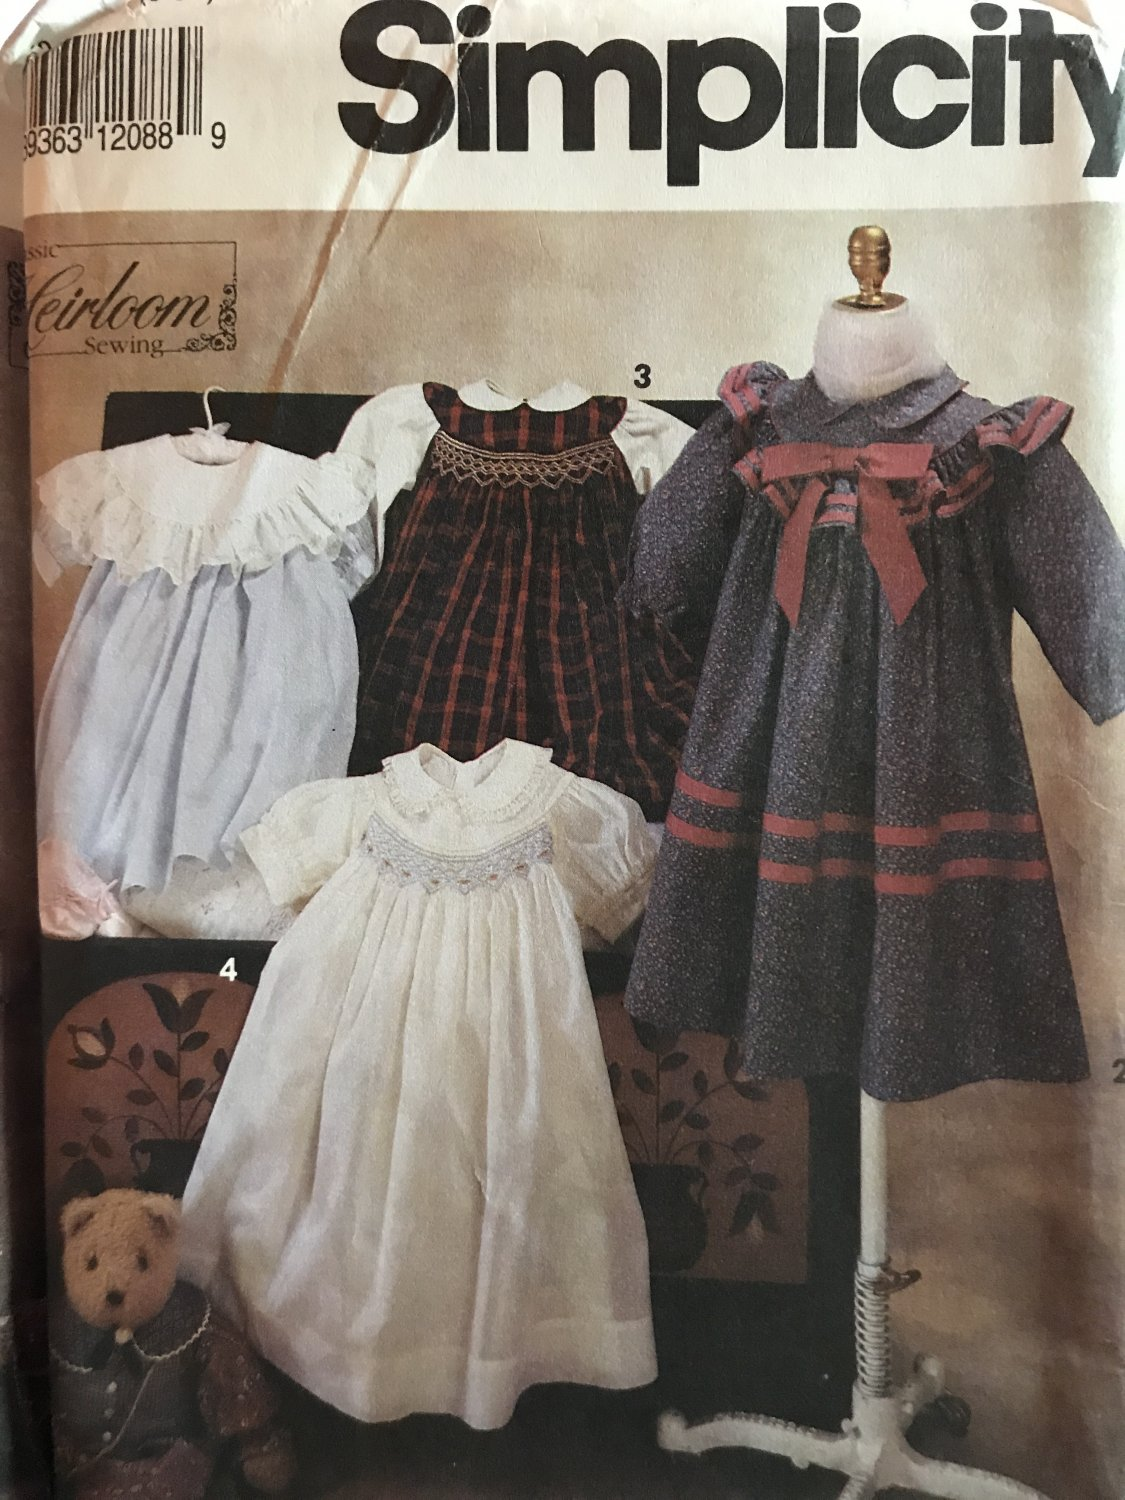 Simplicity 7644 Heirloom child's Dress Pattern with Smocking Oliver Goodin Sewing Pattern Size 5 6X